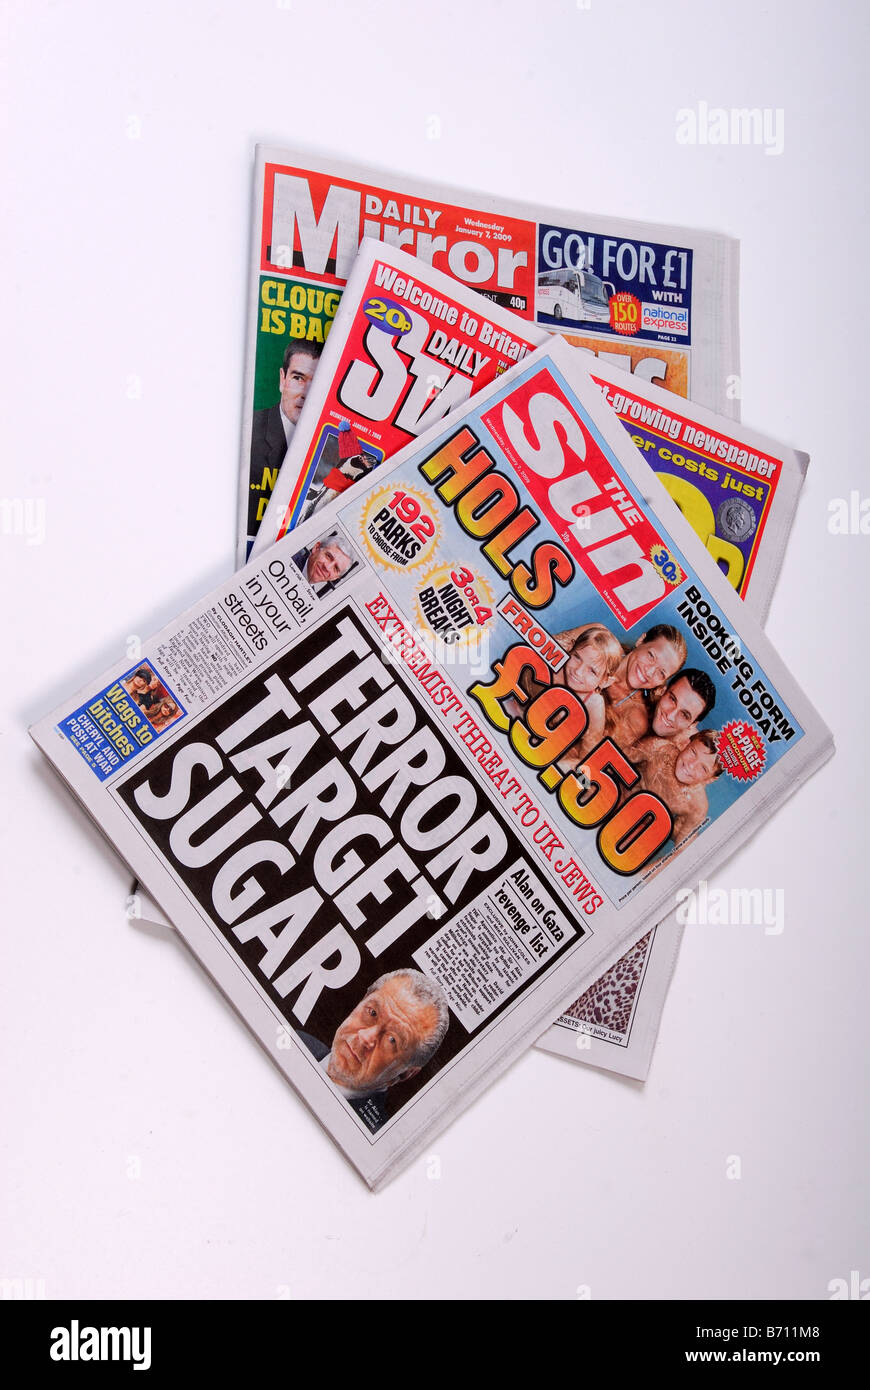 Daily Newspaper's . Stock Photo